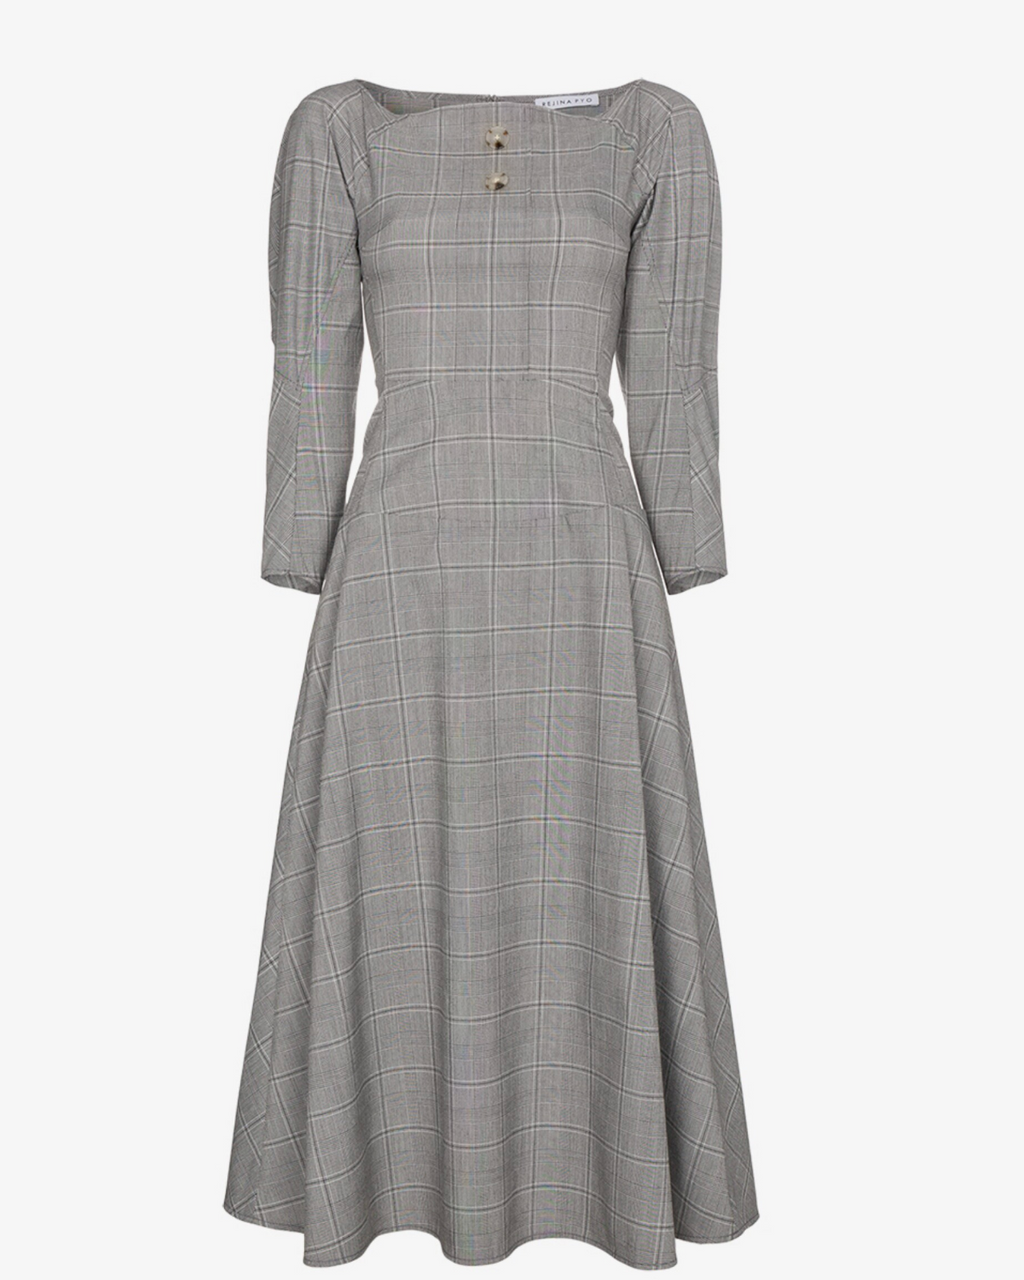 Mina Dress Cotton Grey & Black Check